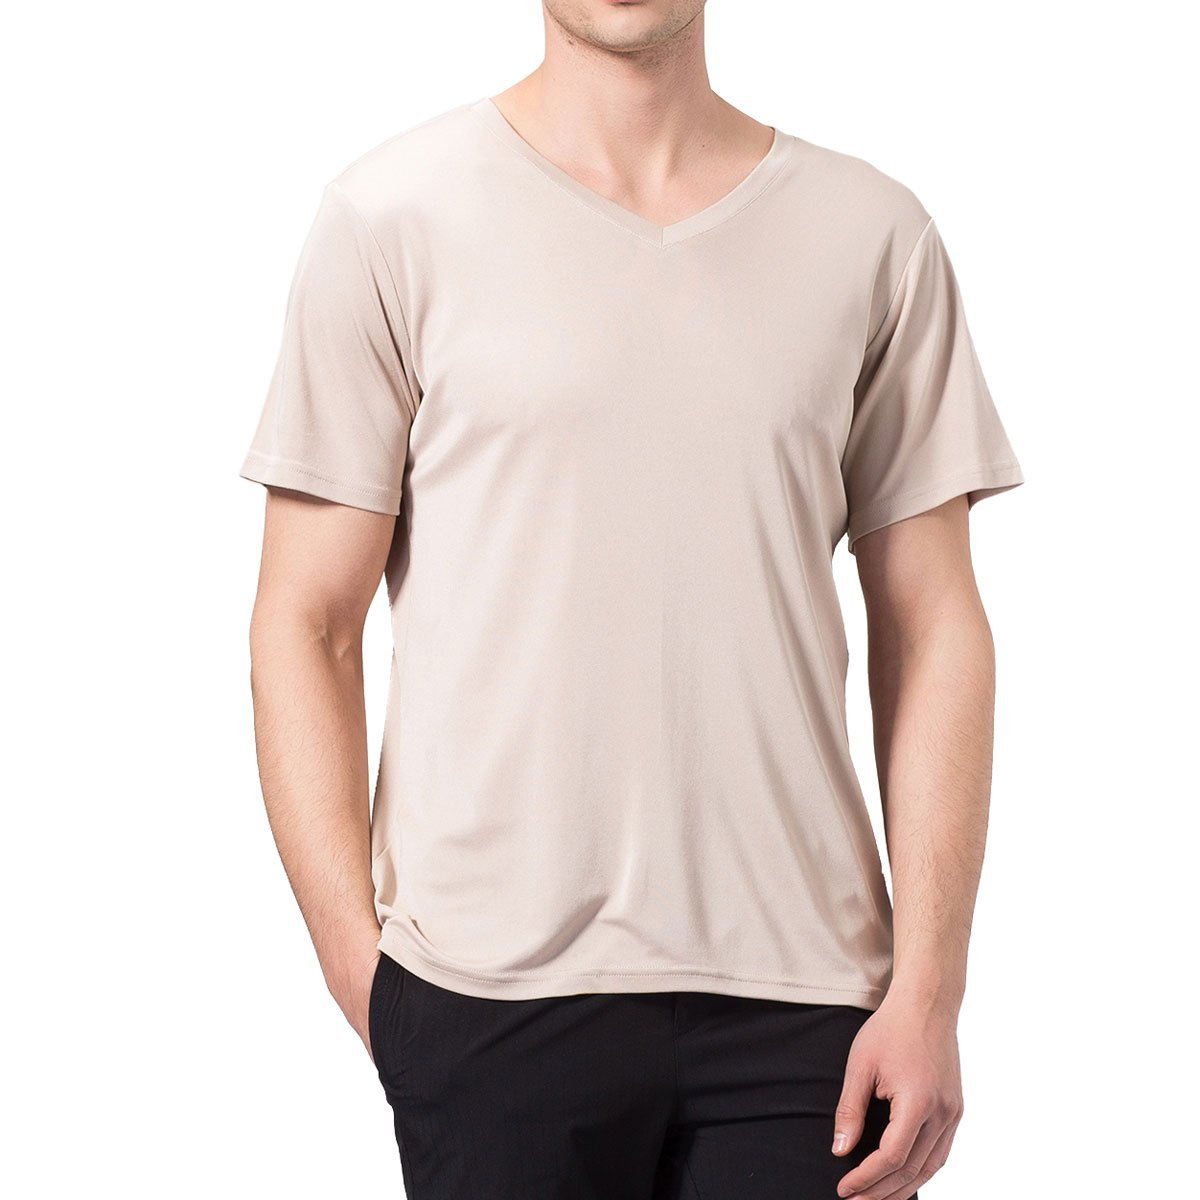 Pure Silk Knitted Mens V neckline Short Sleeves Solid US S M L XL